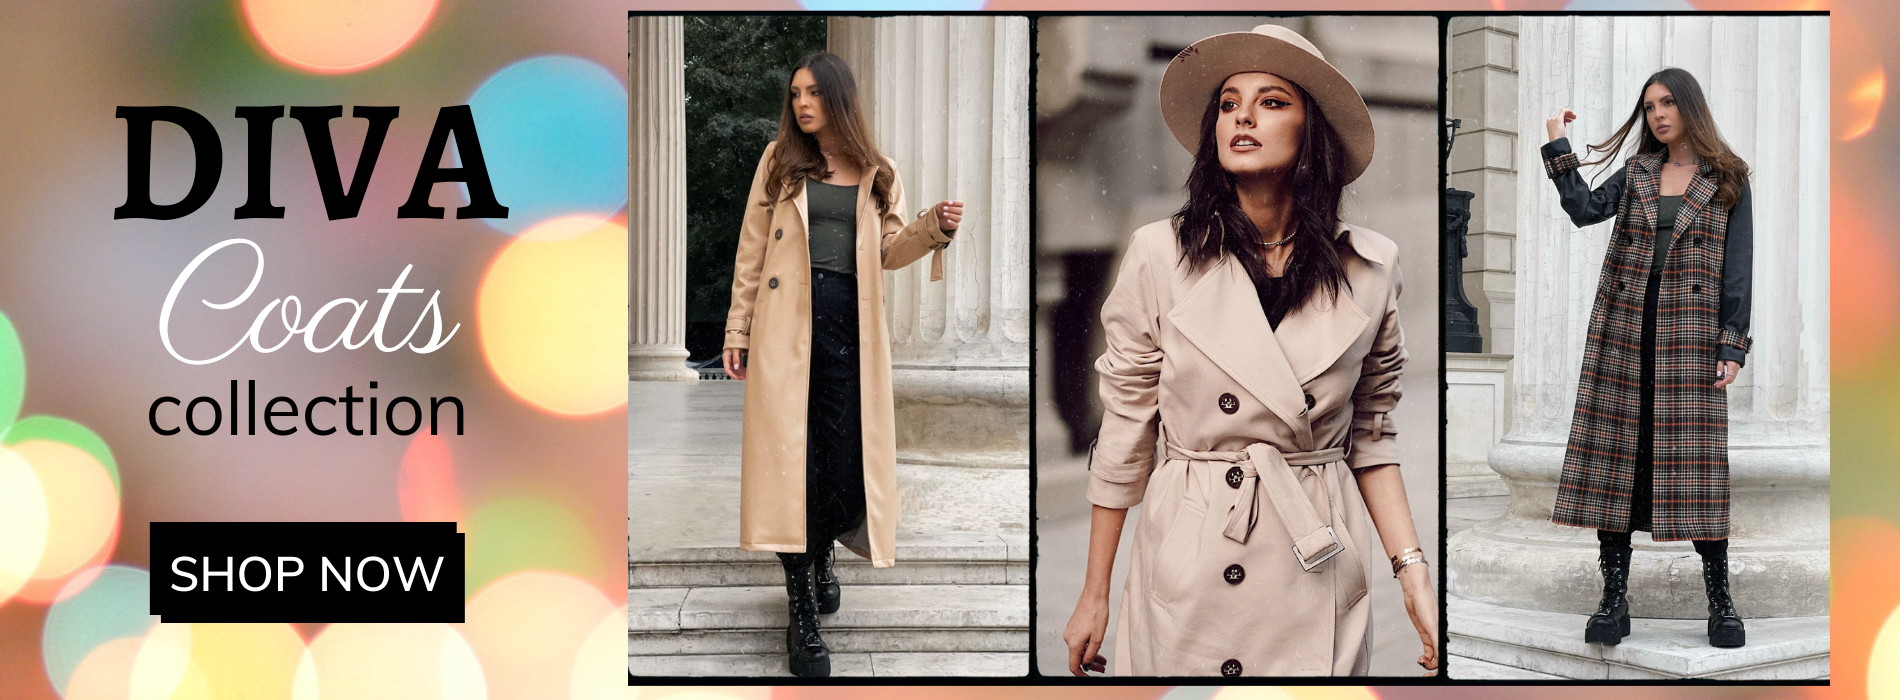 Diva Coats Collection